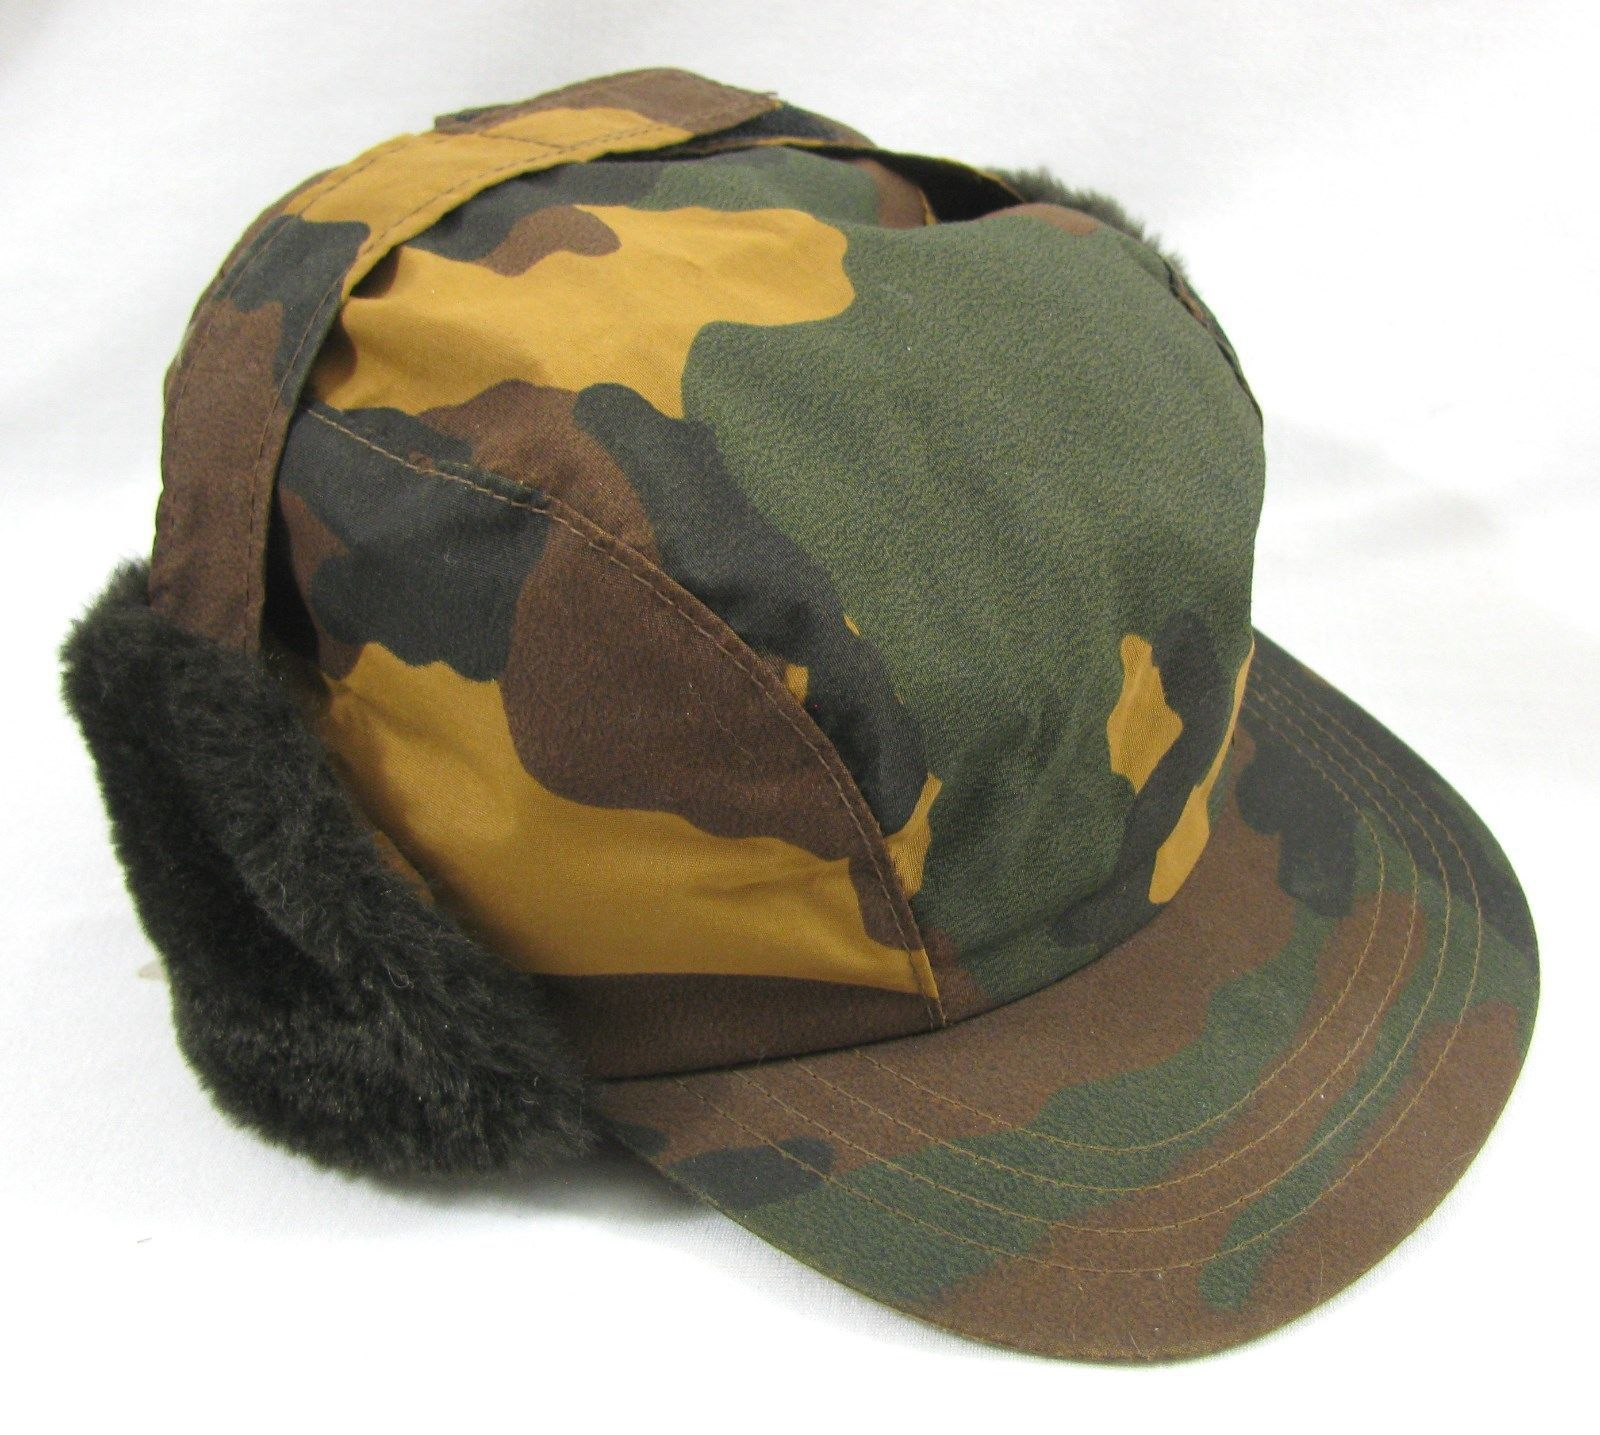 8ecd5b17a66 Vintage Tan Green Camo Medium Hat Ear Flaps 3M Thinsulate Hunting Cap  Camouflage